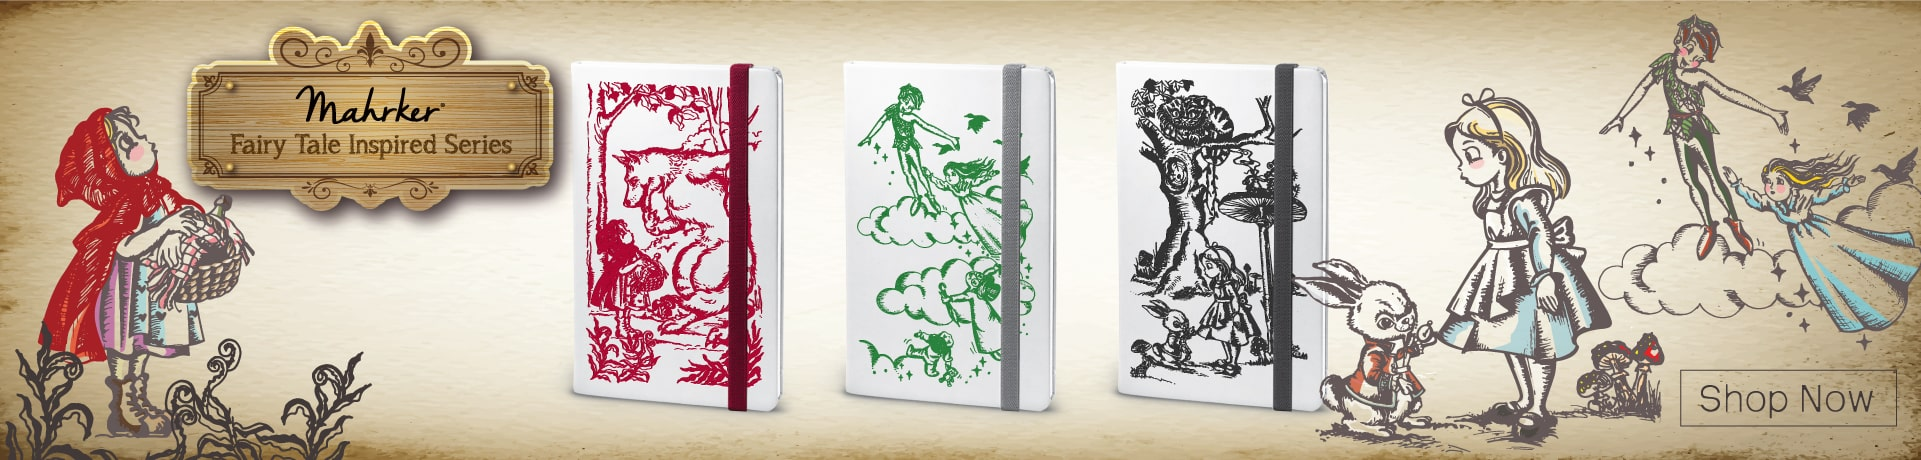 Mahrker Fairy Tale Inspired Series Notebooks